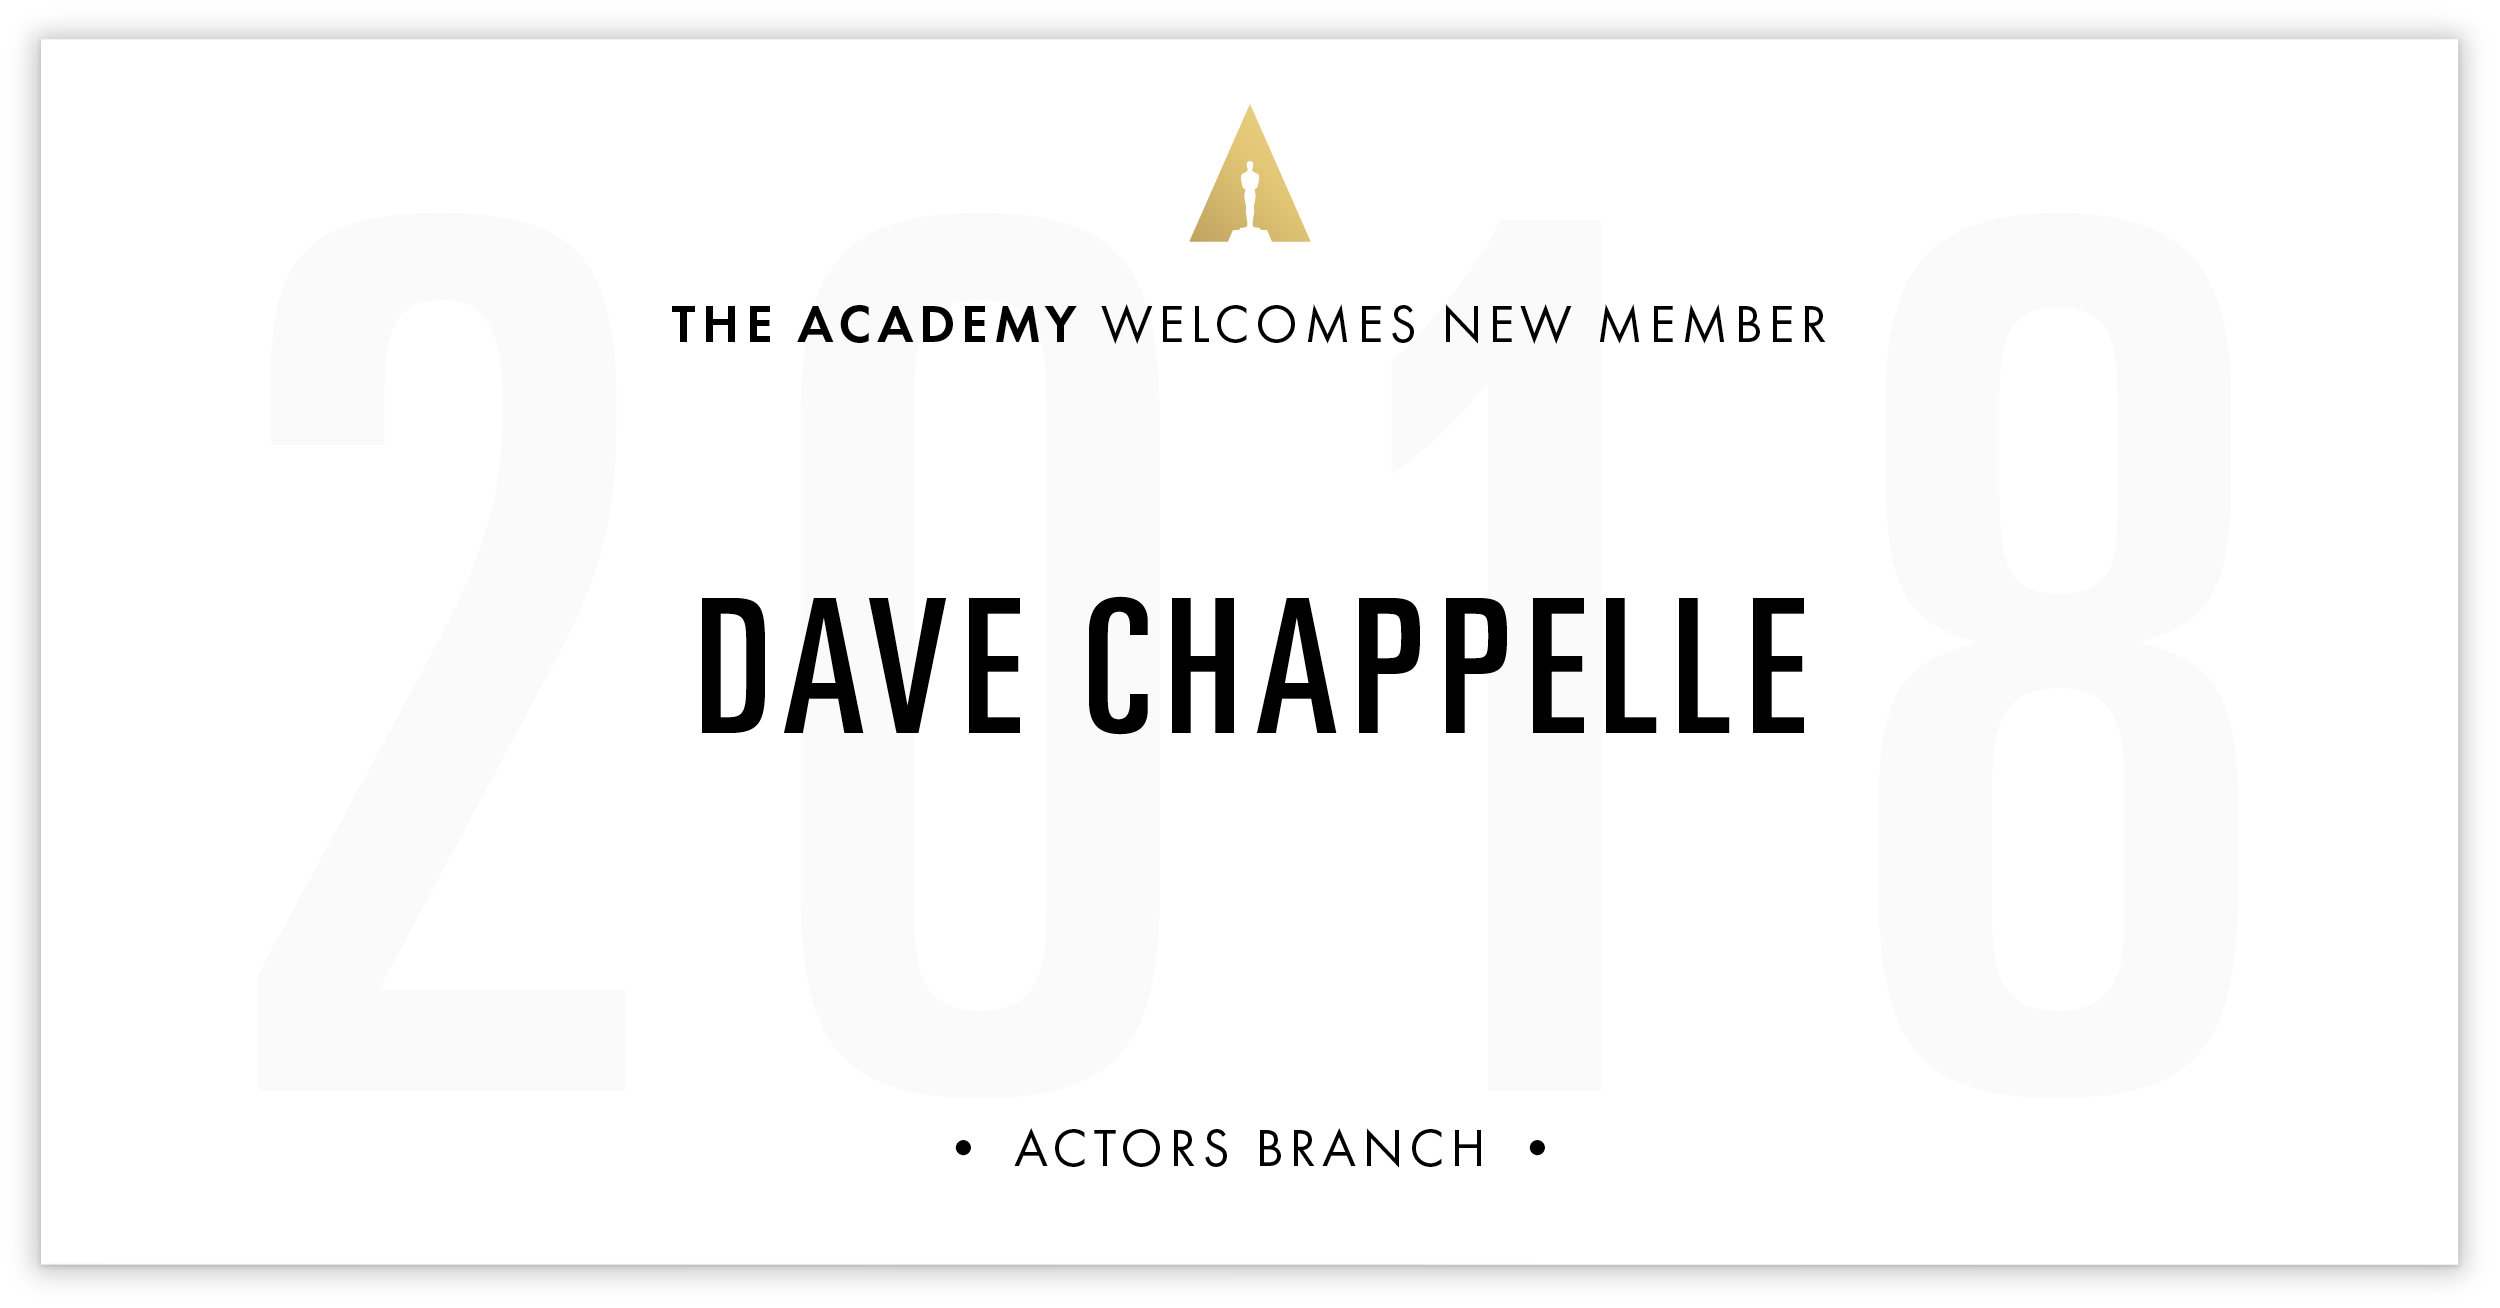 Dave Chappelle is invited!